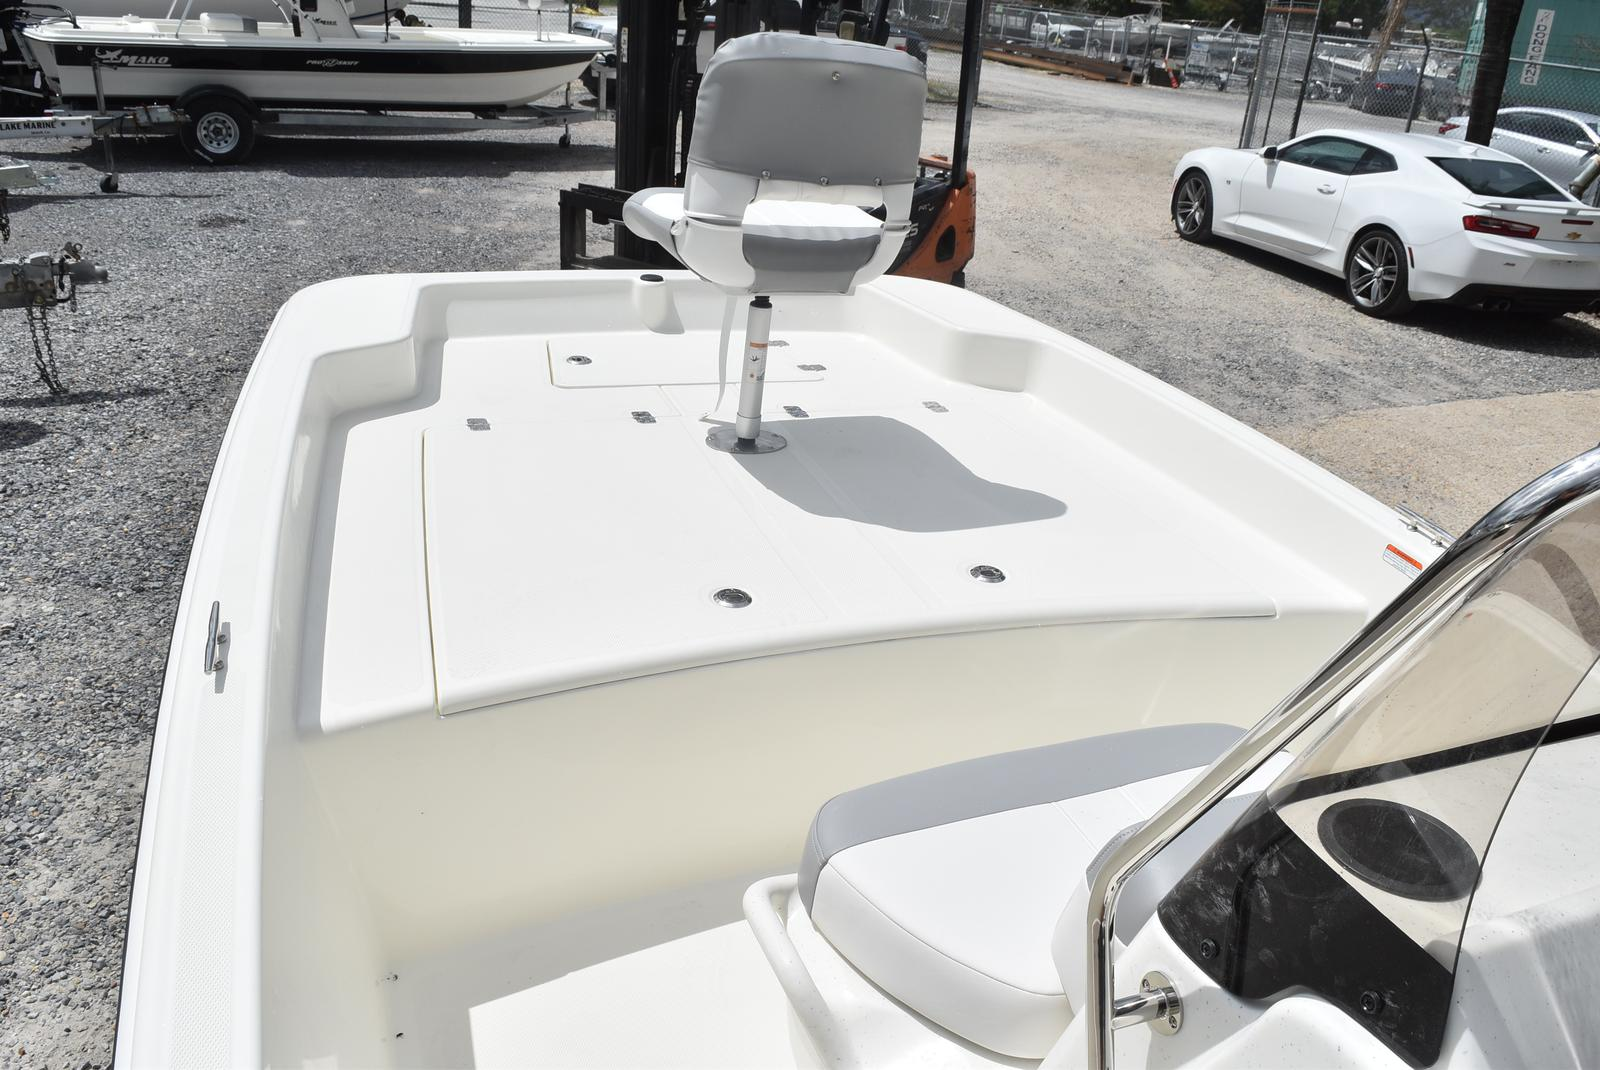 2020 Mako boat for sale, model of the boat is Pro Skiff 17, 75 ELPT & Image # 456 of 702